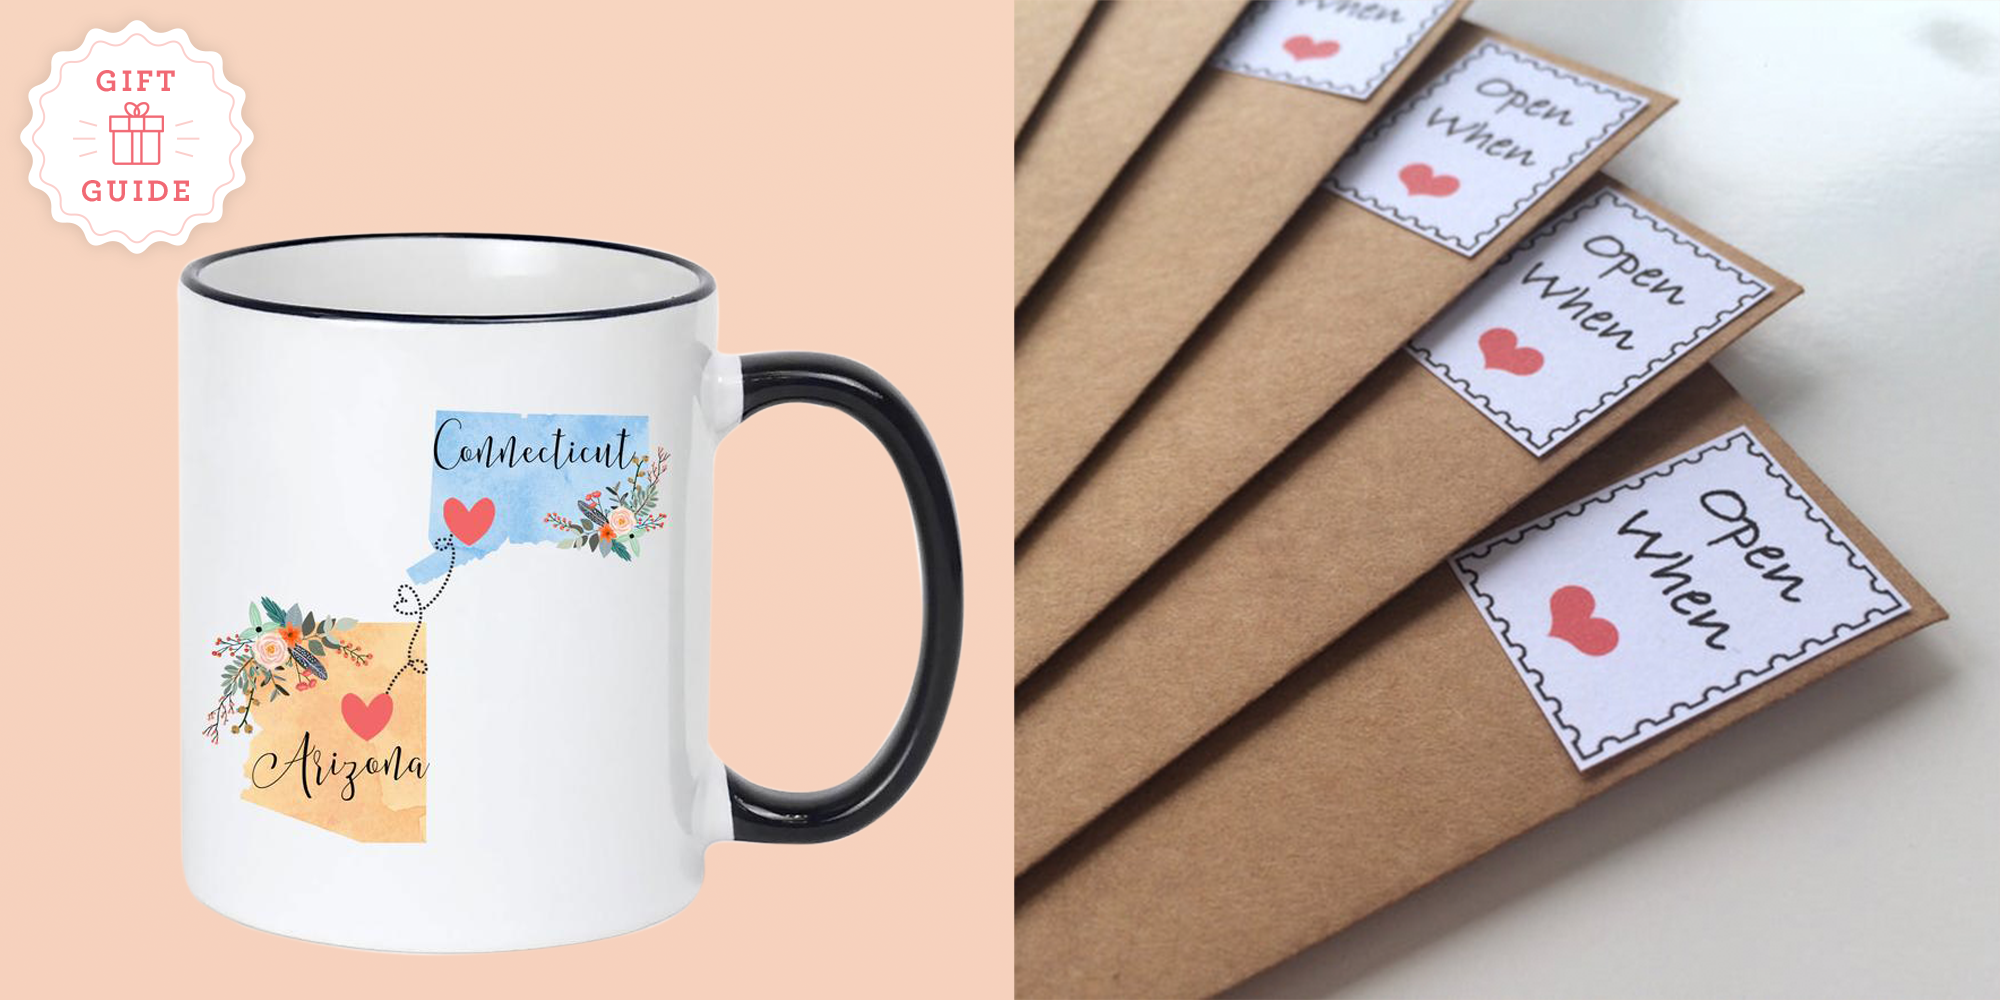 19 Best Long Distance Relationship Gifts Under 50 For Him And Her